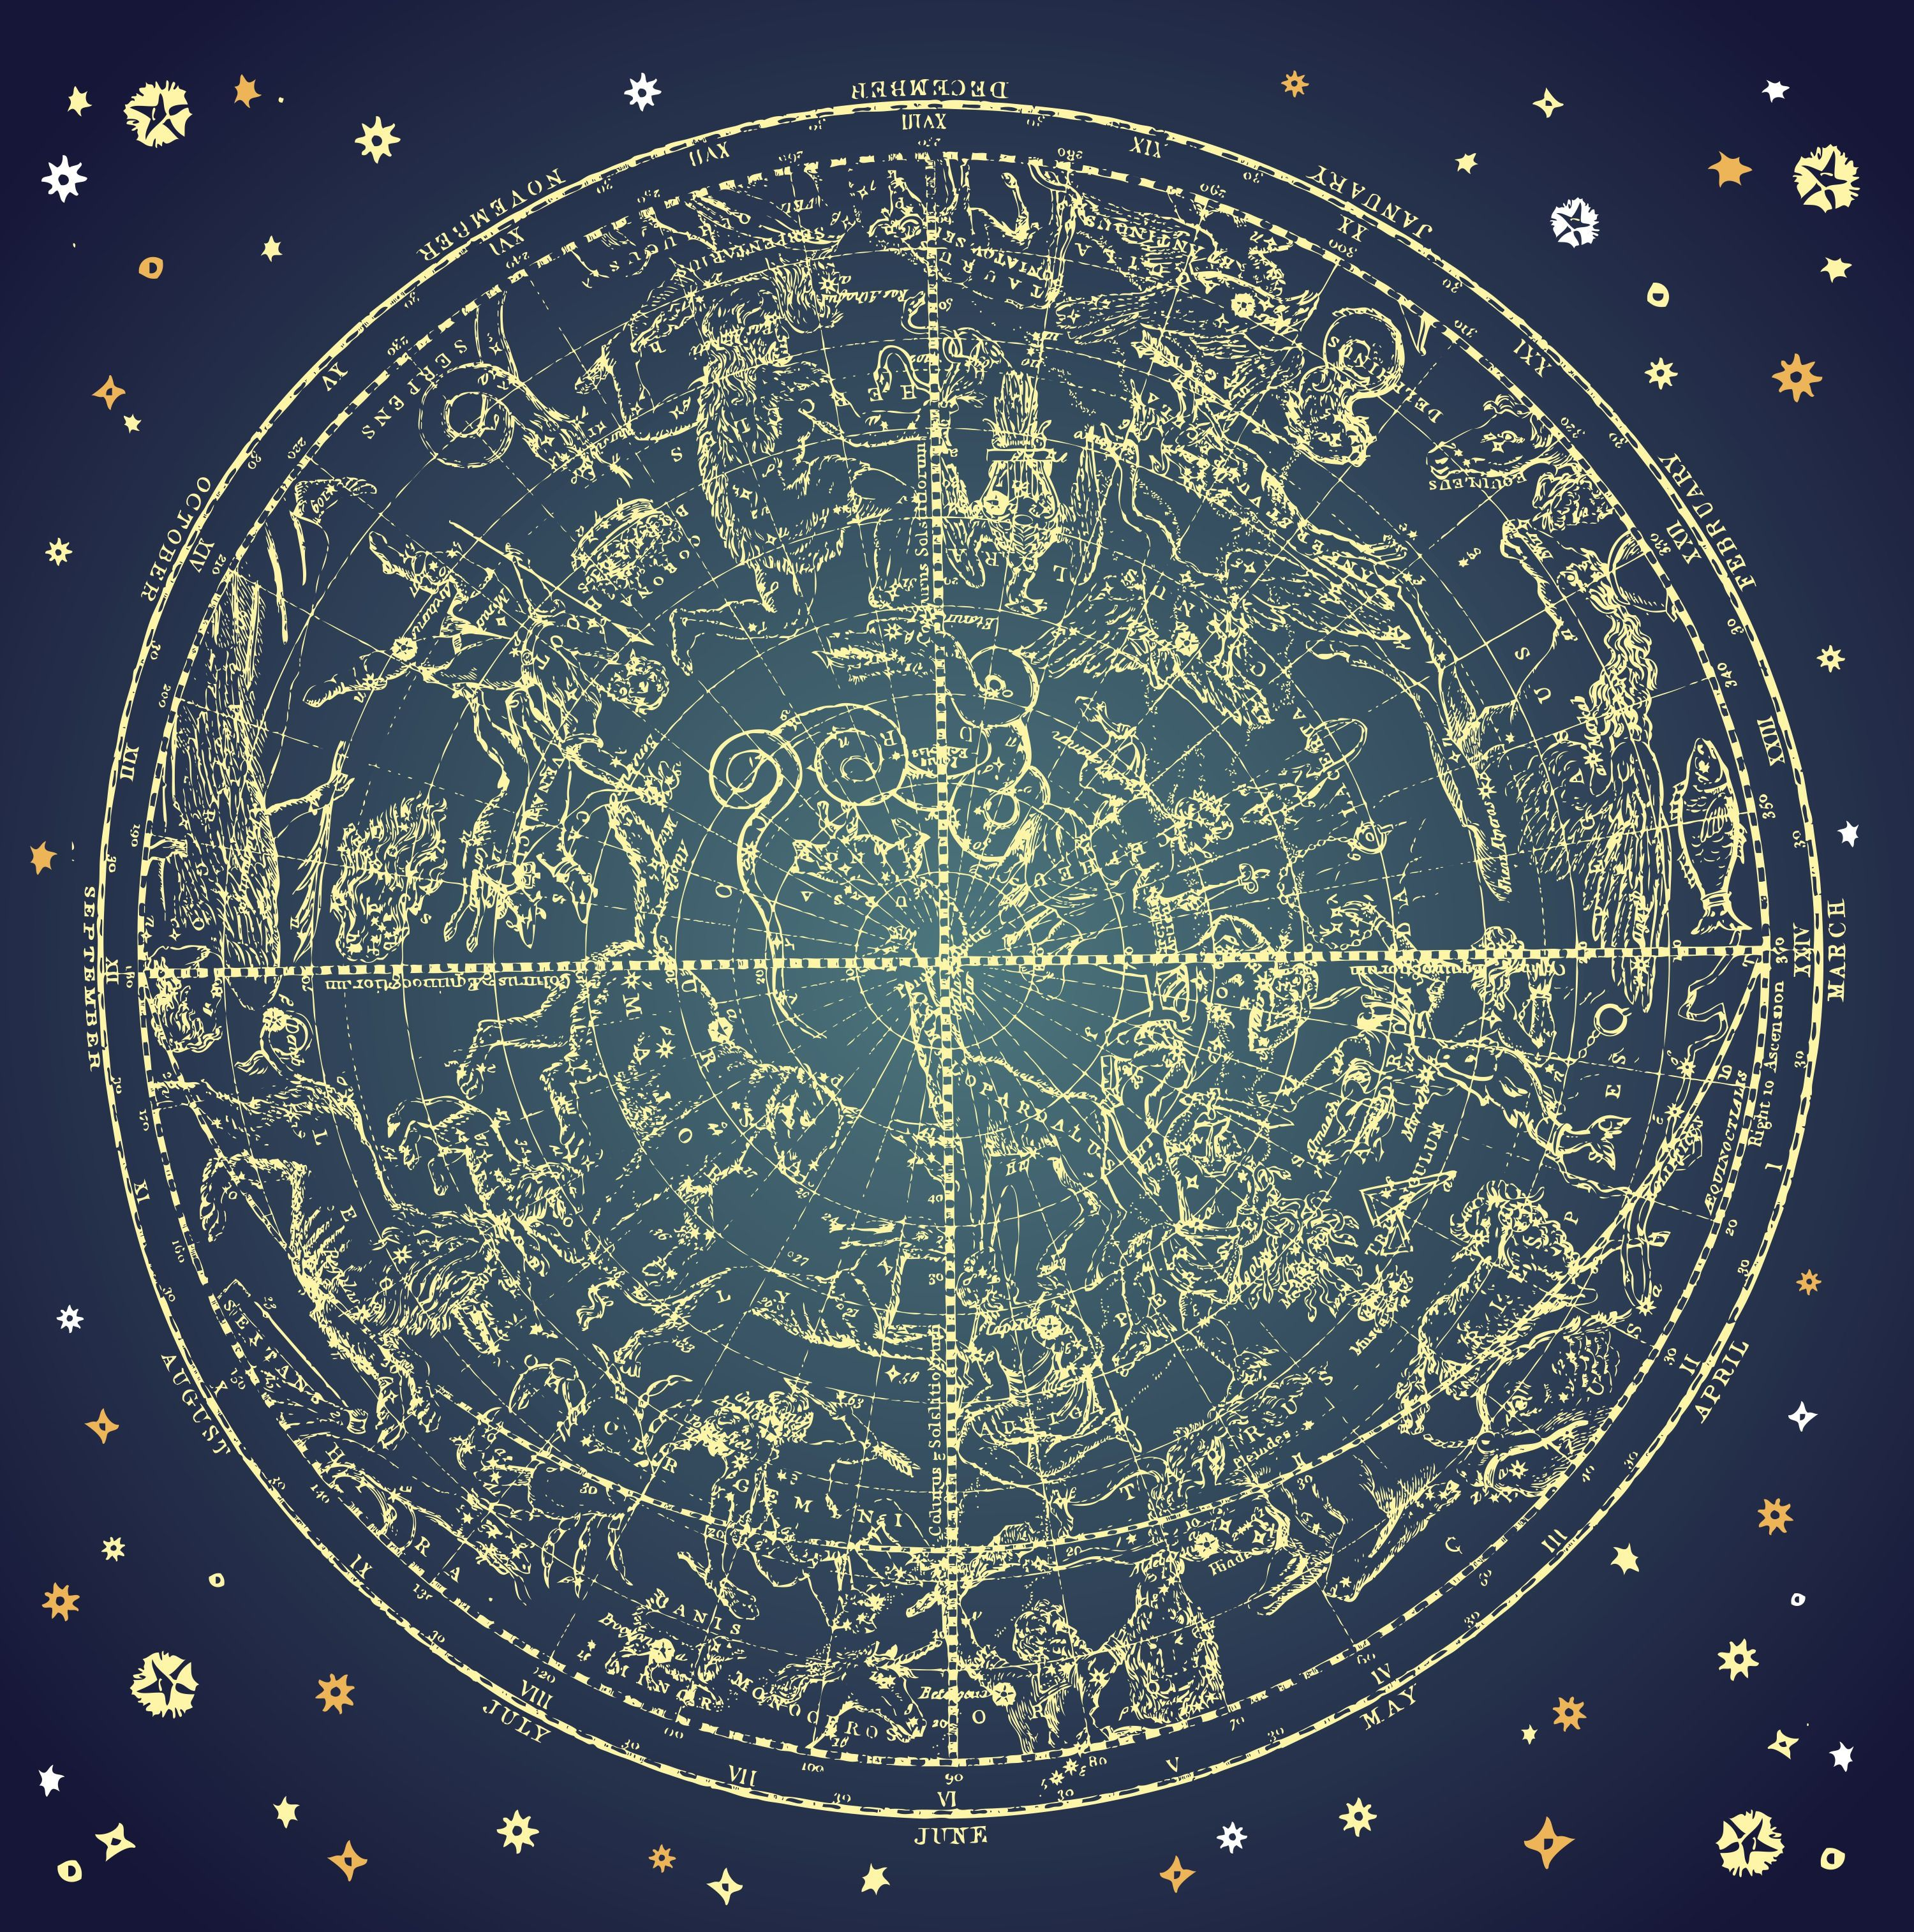 Drop everything and look up your astrological birth chart birth drop everything and look up your astrological birth chart nvjuhfo Gallery